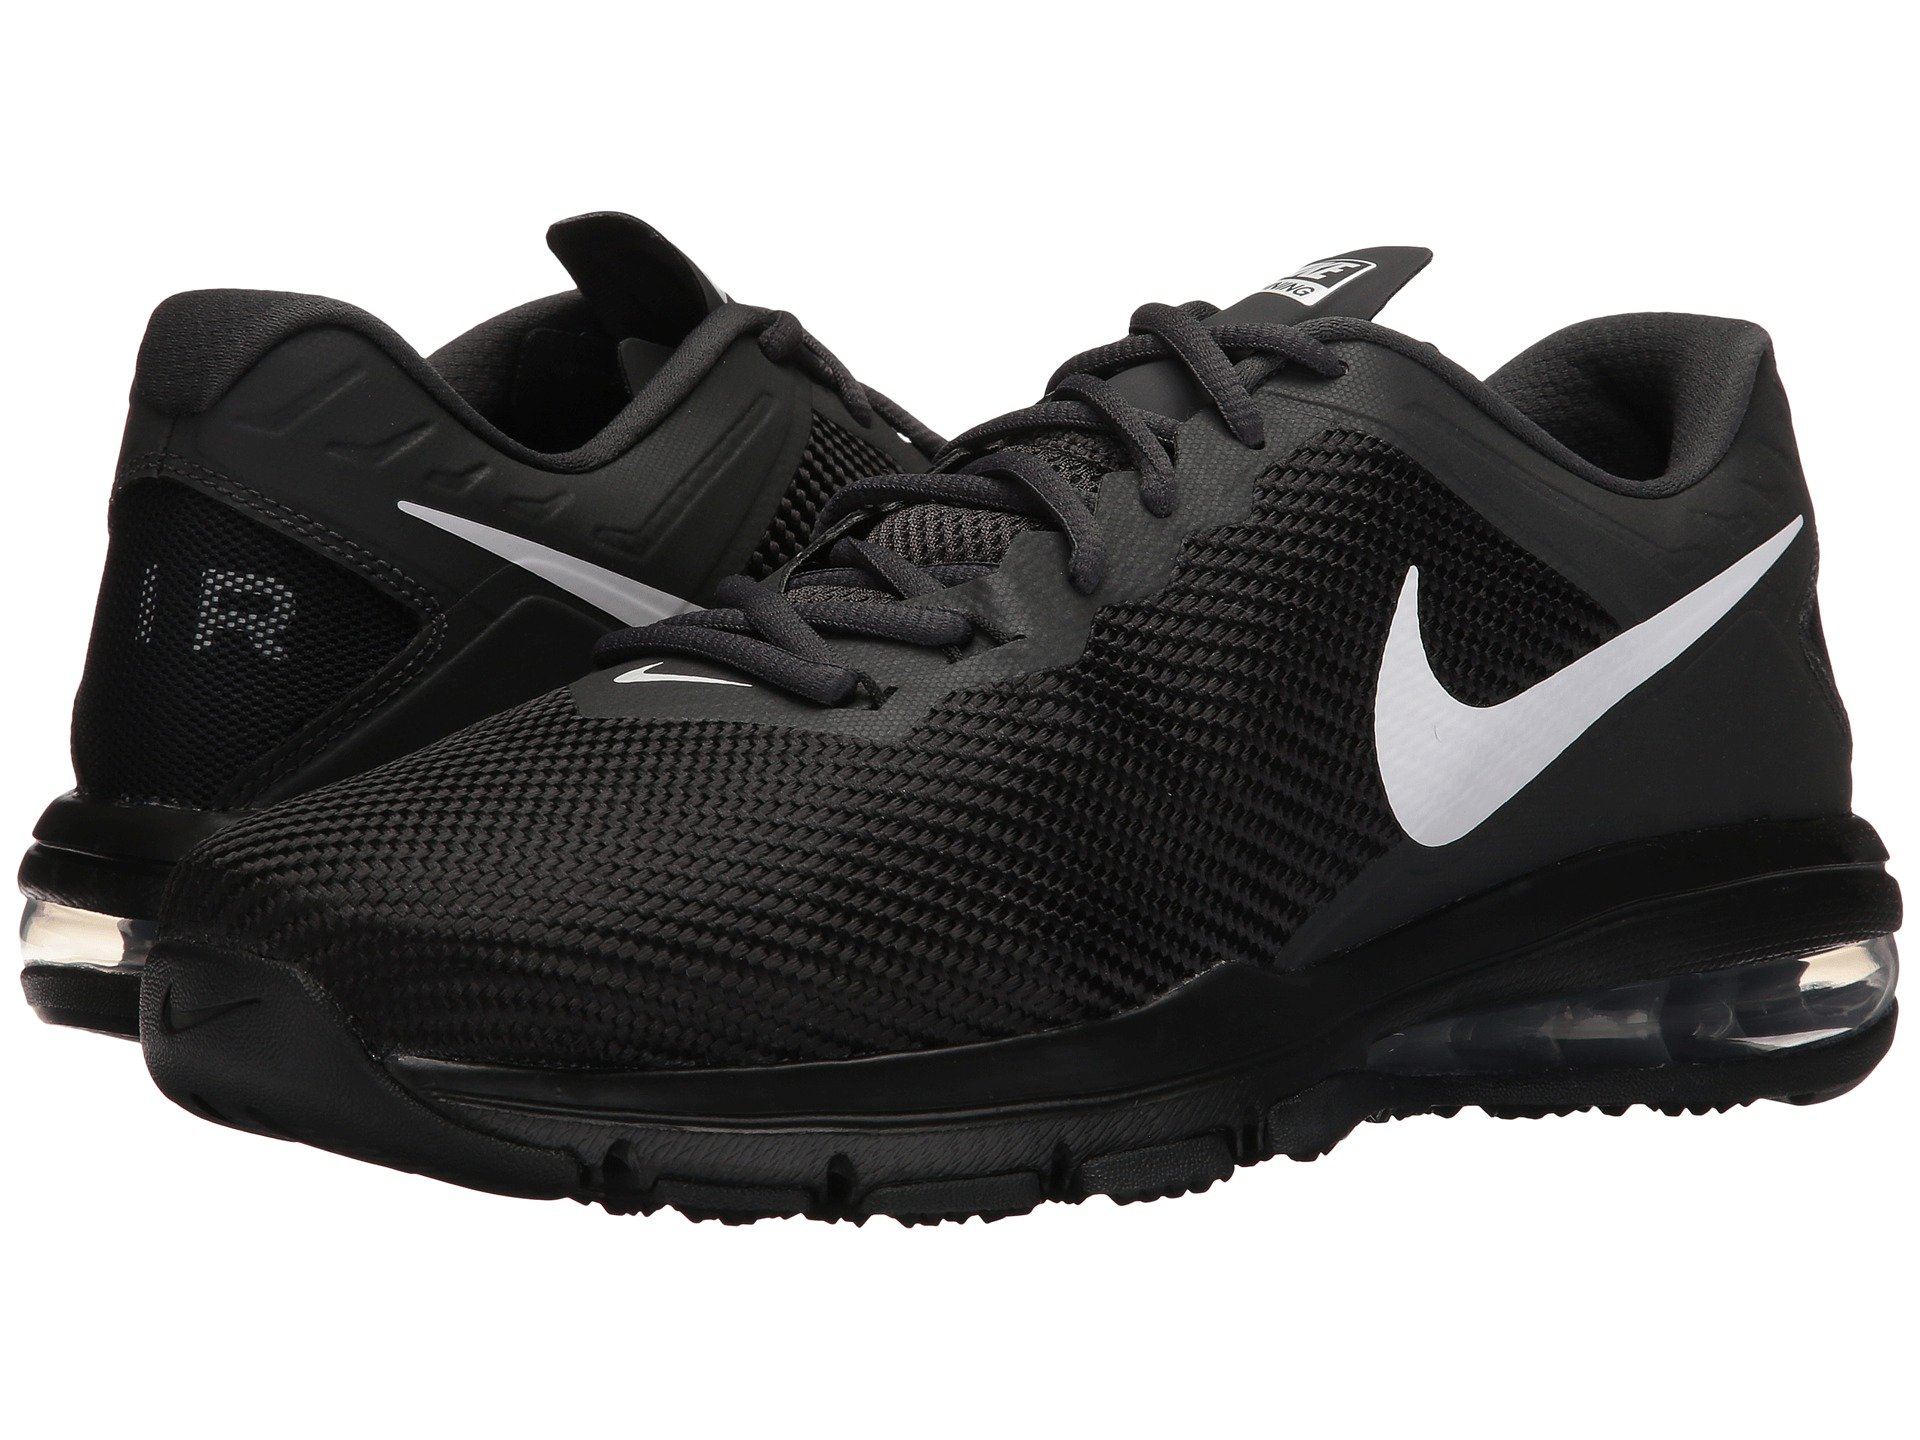 Nike Steel Toe Shoes For Sale